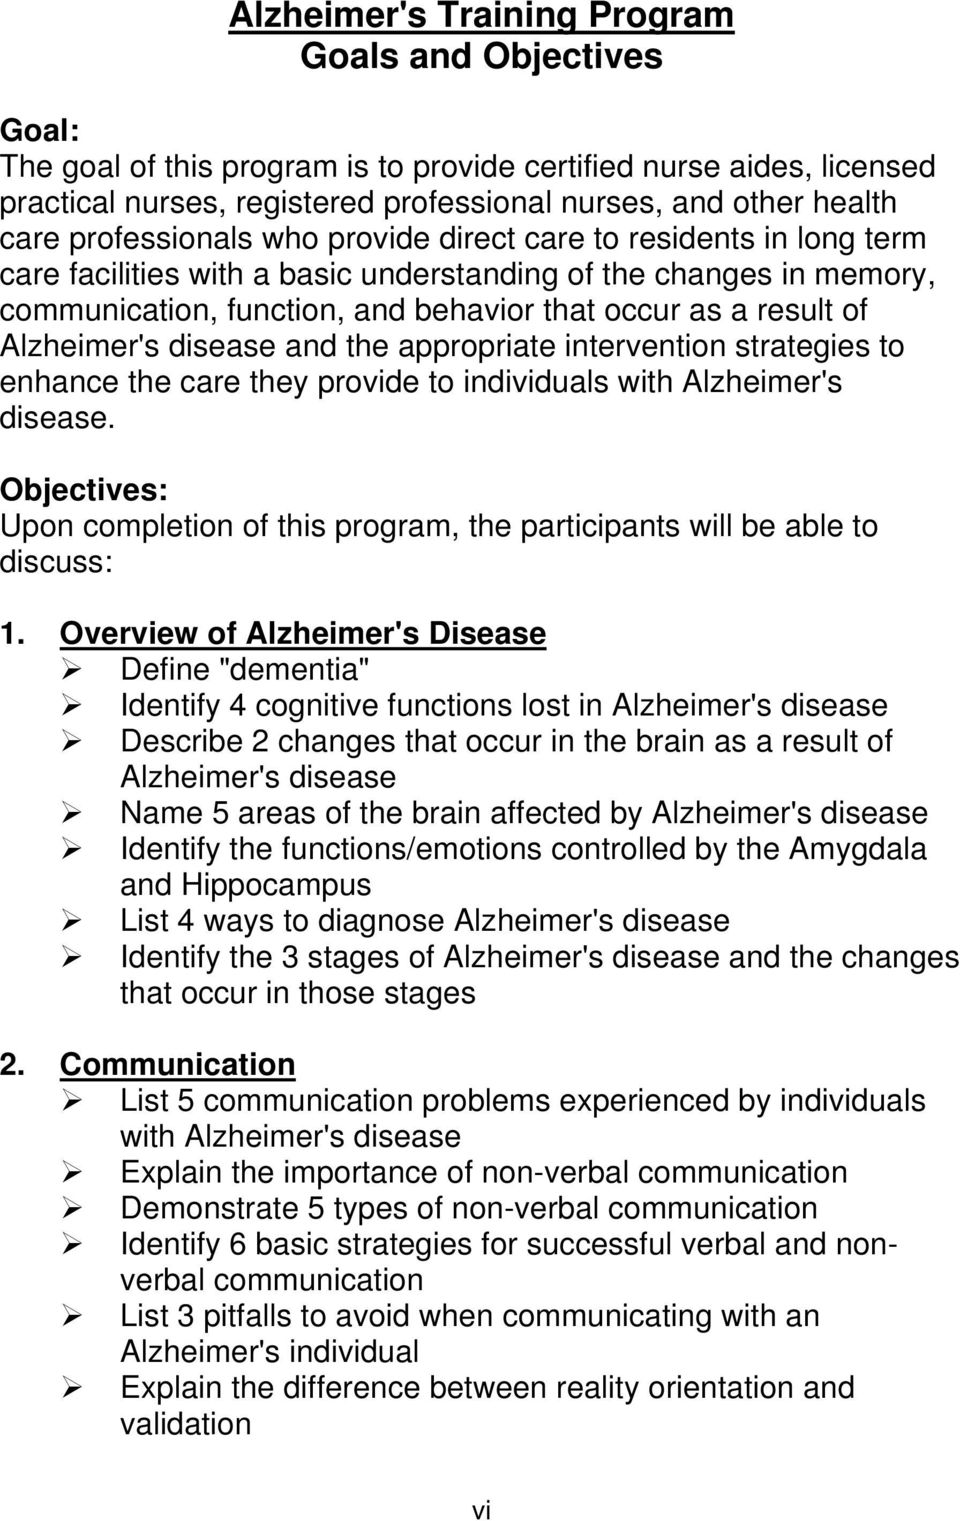 Alzheimer's disease and the appropriate intervention strategies to enhance the care they provide to individuals with Alzheimer's disease.